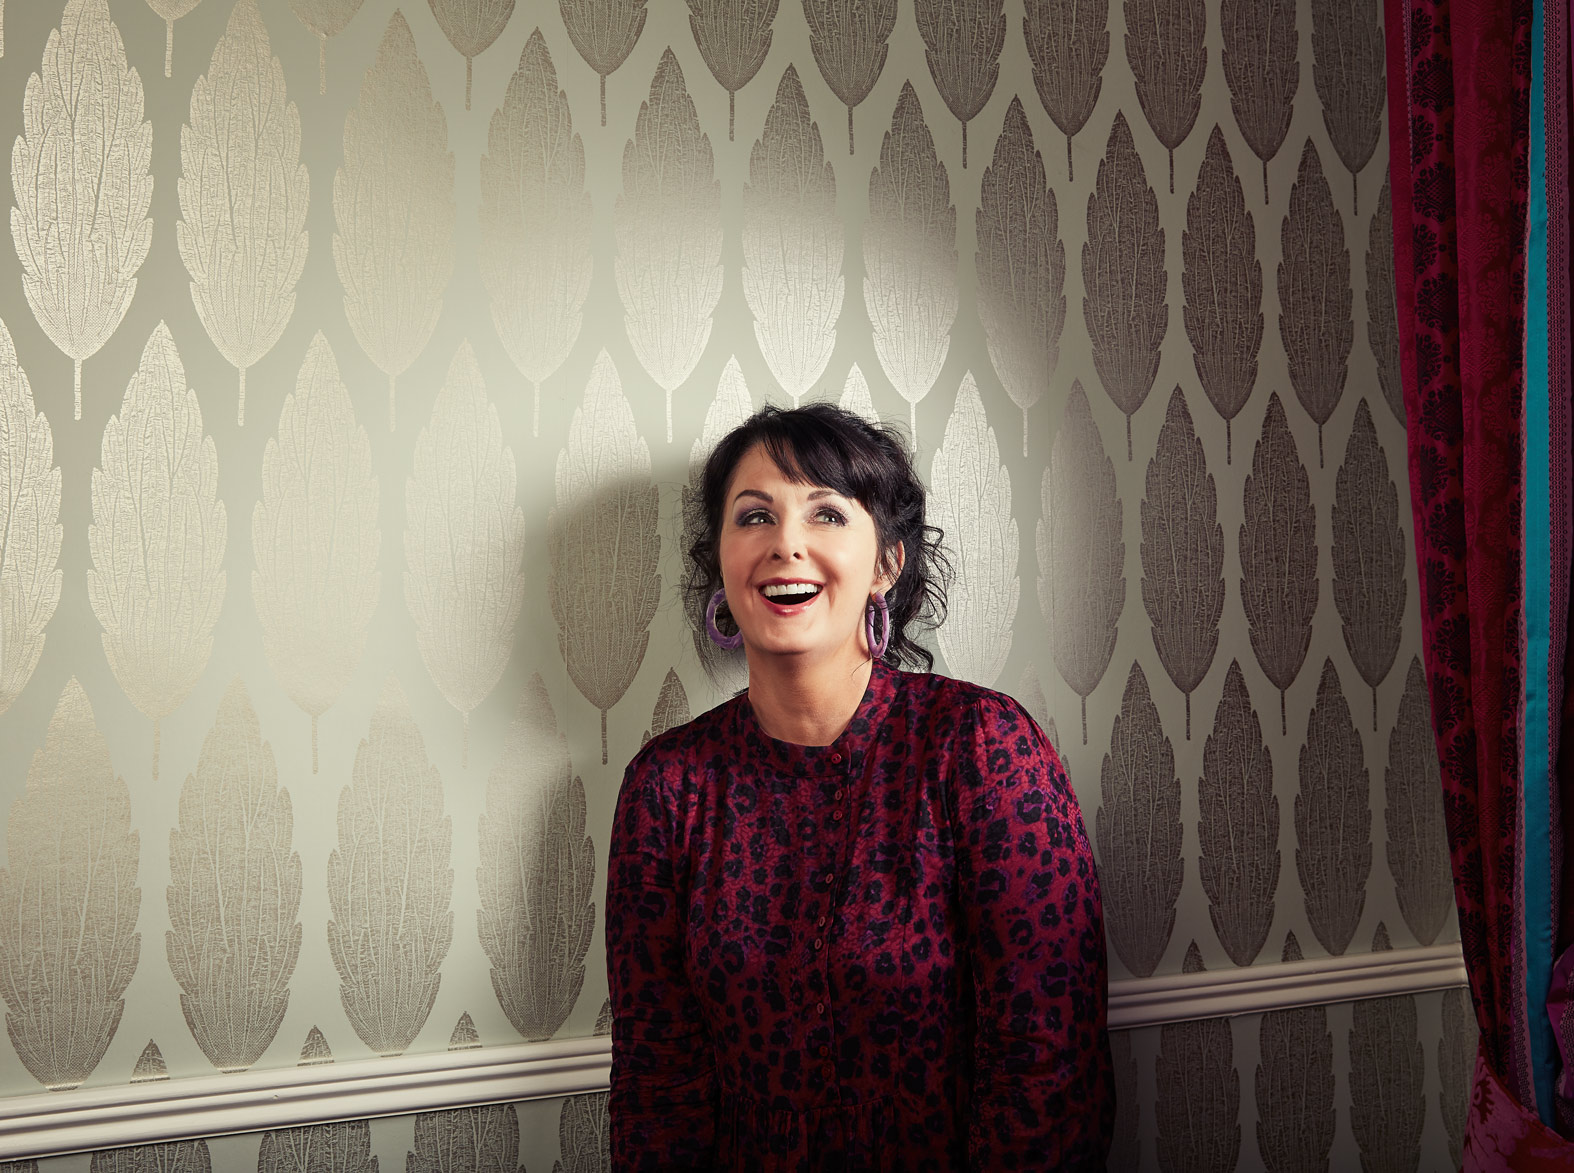 portrait photography: bestselling author marian keyes